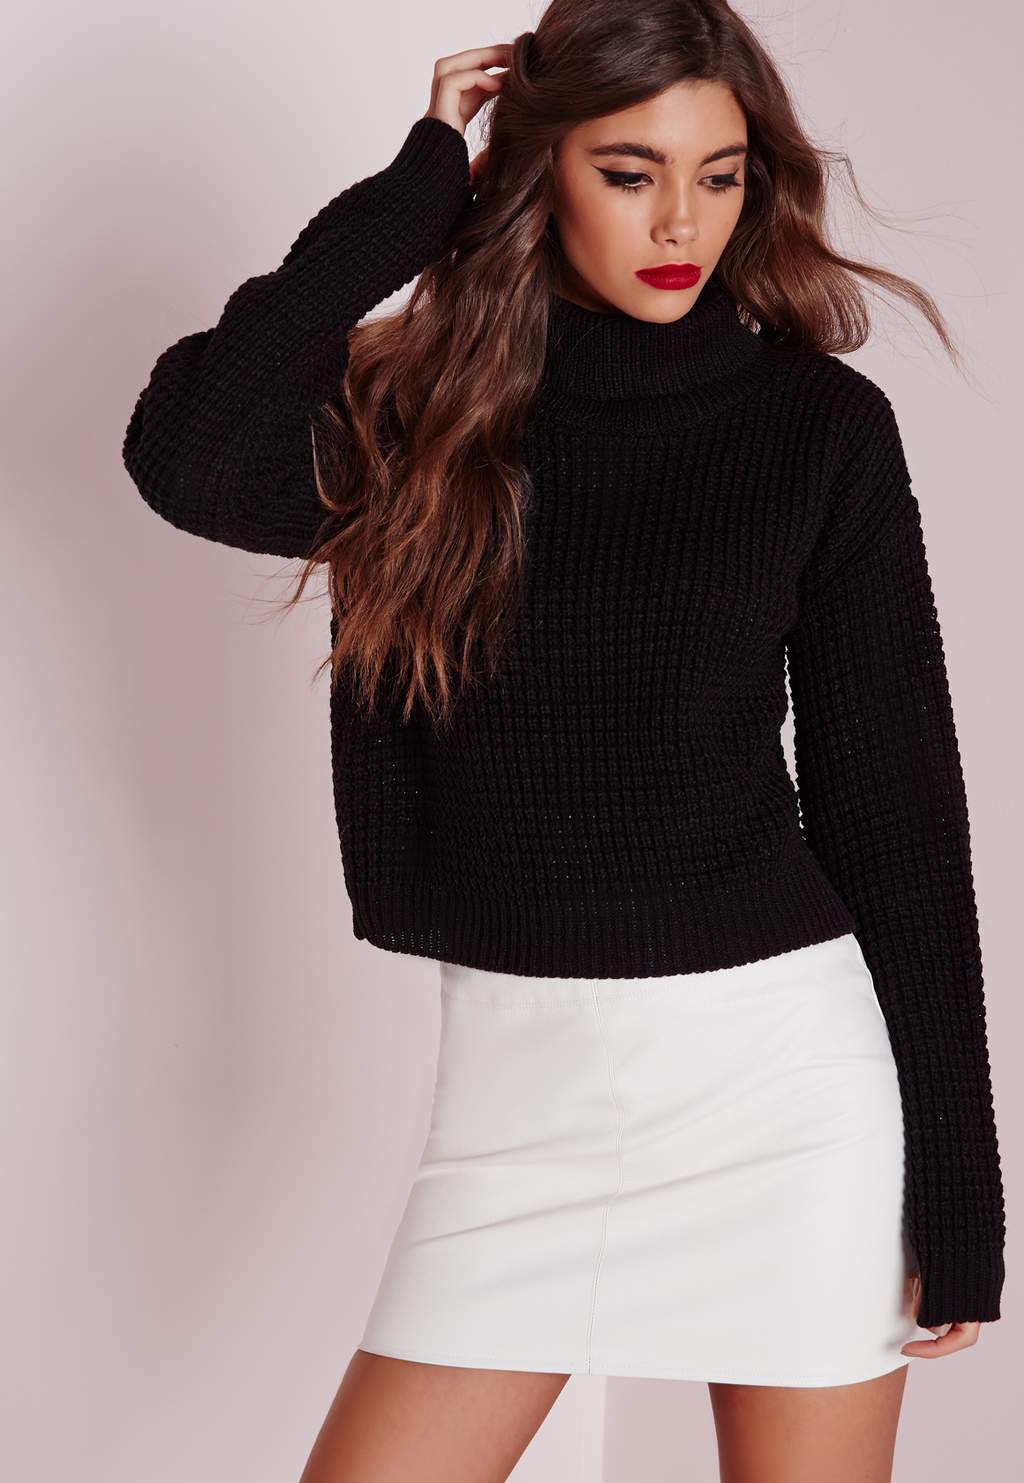 Fisherman Stitch Roll Neck Jumper Black, Black - pattern: plain; neckline: roll neck; style: standard; predominant colour: black; occasions: casual, creative work; length: standard; fibres: acrylic - 100%; fit: standard fit; sleeve length: long sleeve; sleeve style: standard; texture group: knits/crochet; pattern type: knitted - other; season: a/w 2015; wardrobe: basic